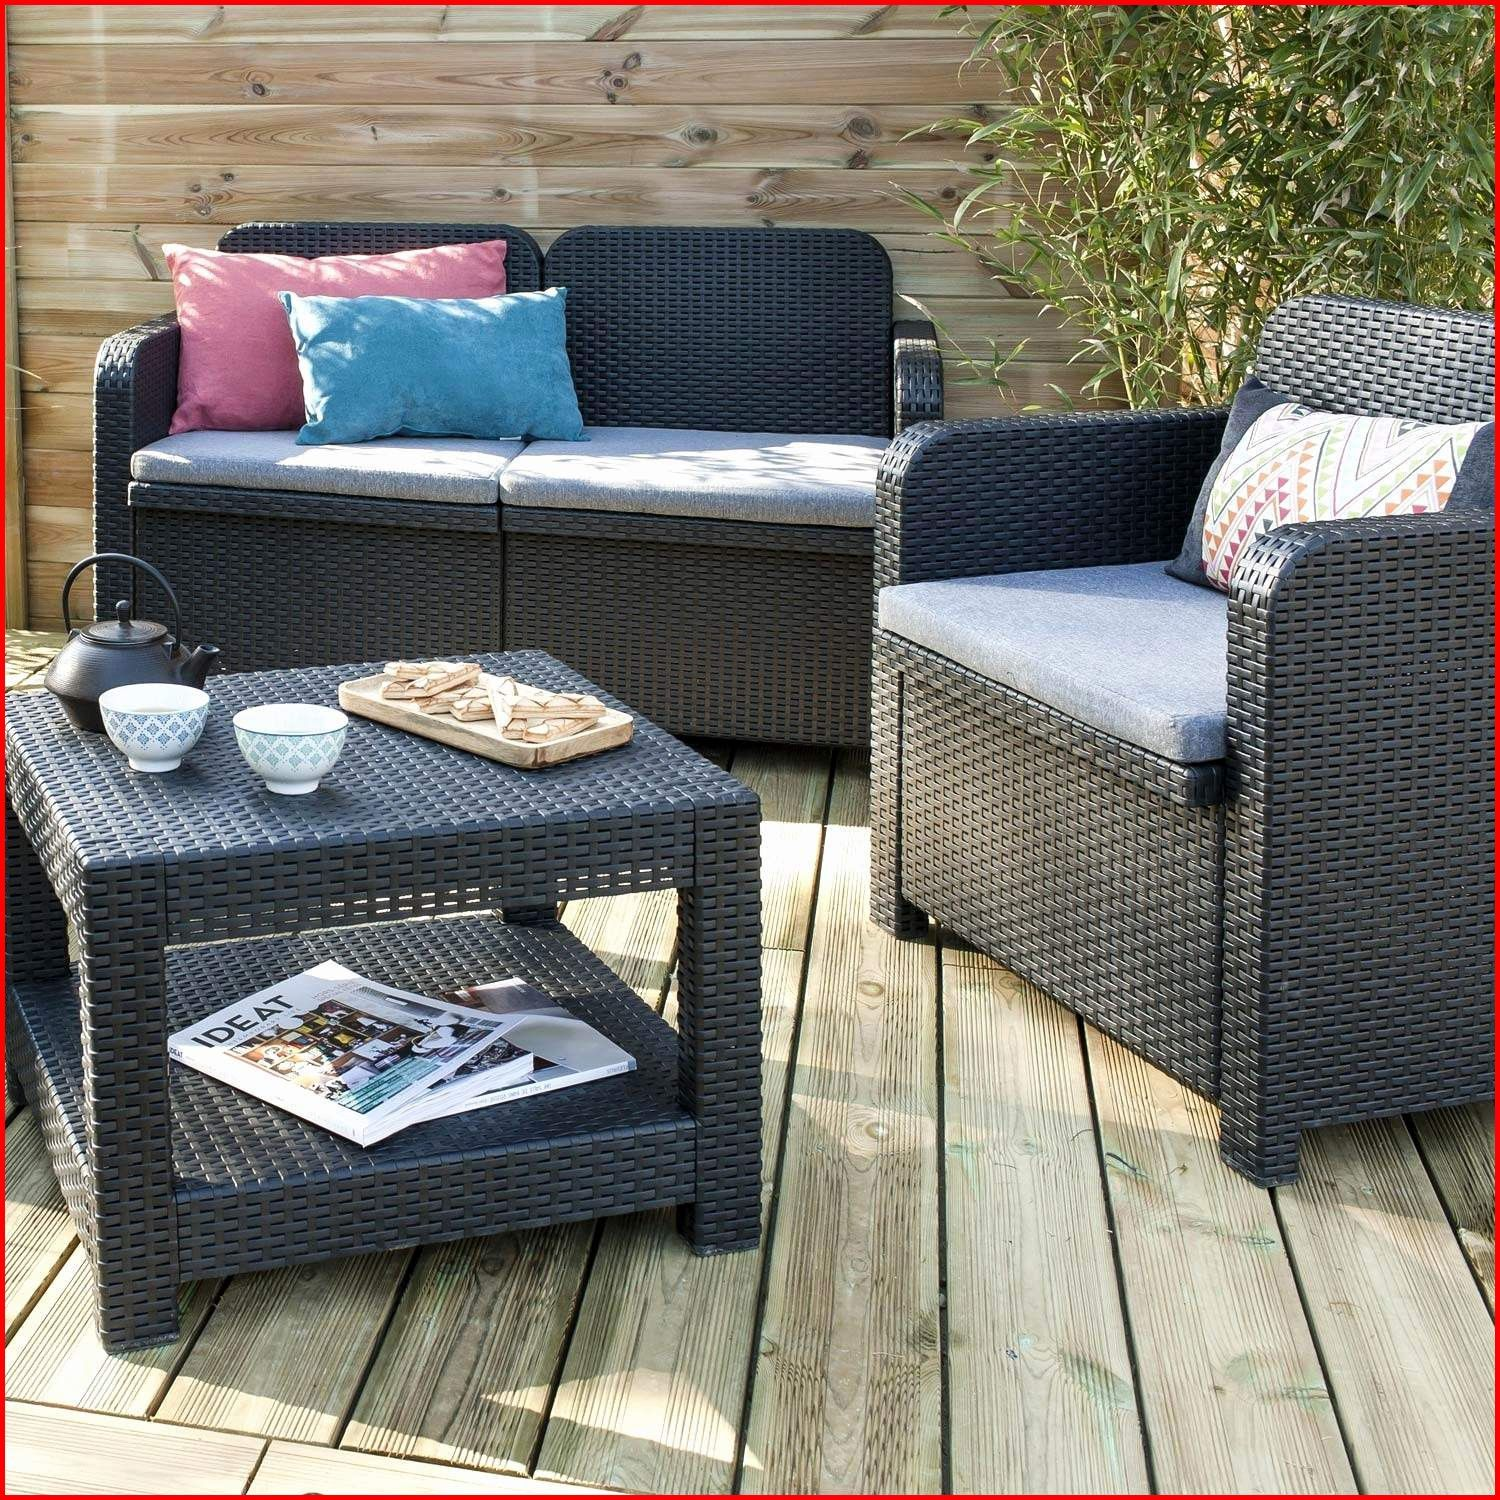 Villaverde Antibes Mobilier De Jardin Outdoor Furniture Outdoor